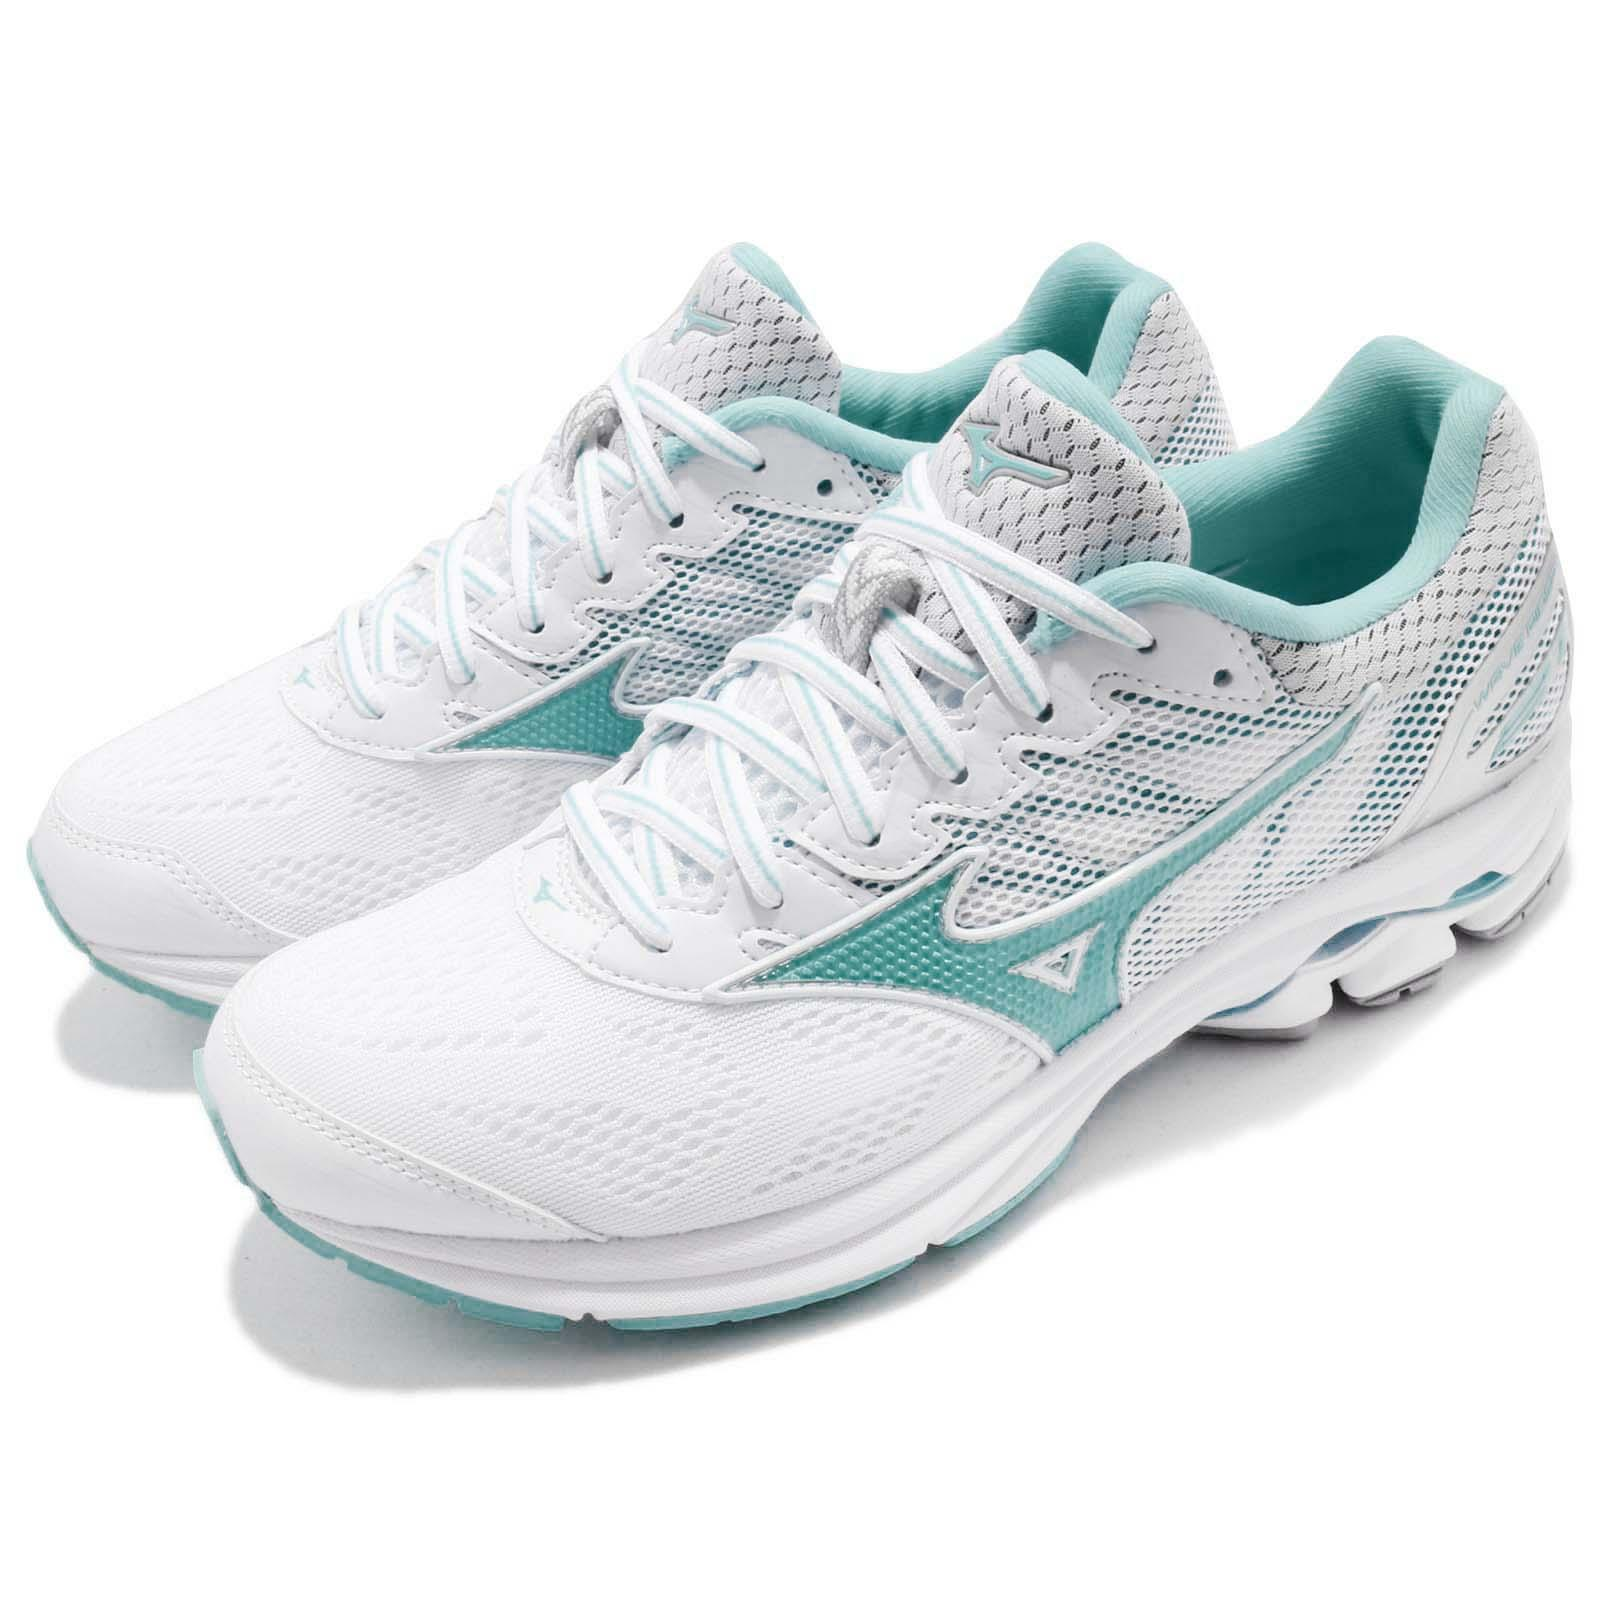 Details about Mizuno Wave Rider 21 White Green Womens Running Shoes  Trainers J1GD1803-04 5d6222cef3